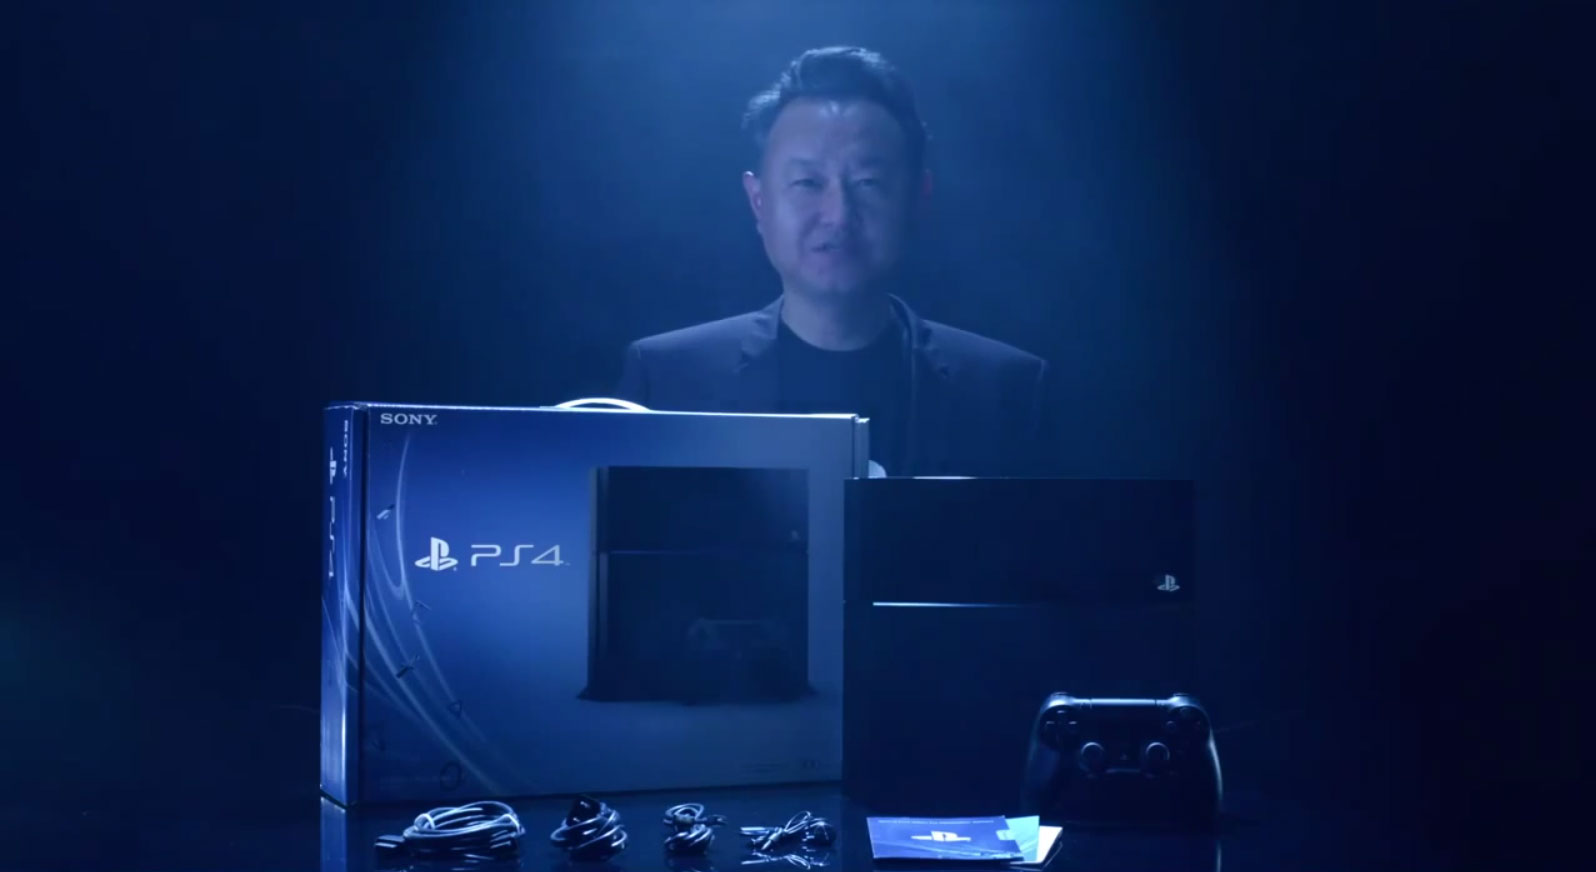 file_7460_Shuhei-Yoshida-unboxing-PlayStation-4